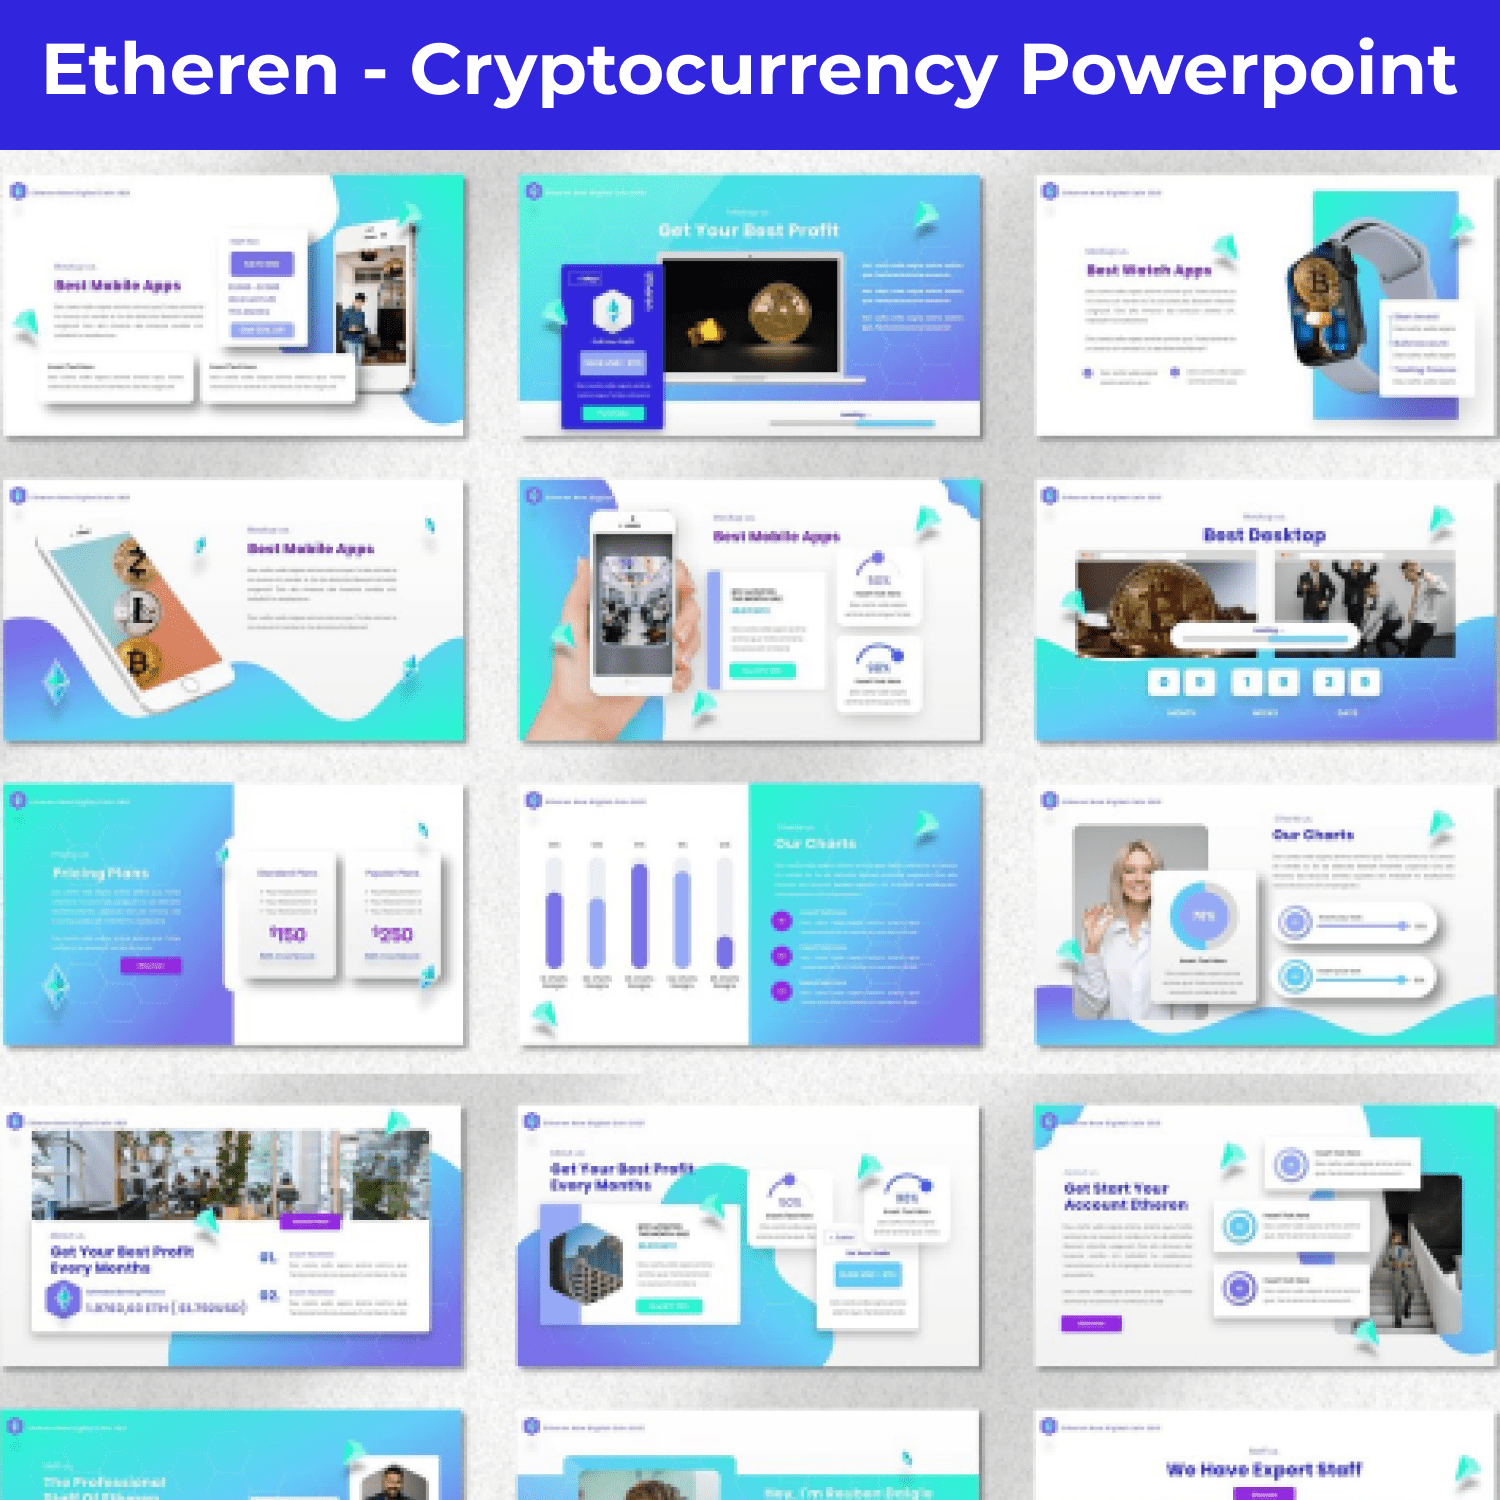 Etheren - Cryptocurrency Powerpoint main cover.